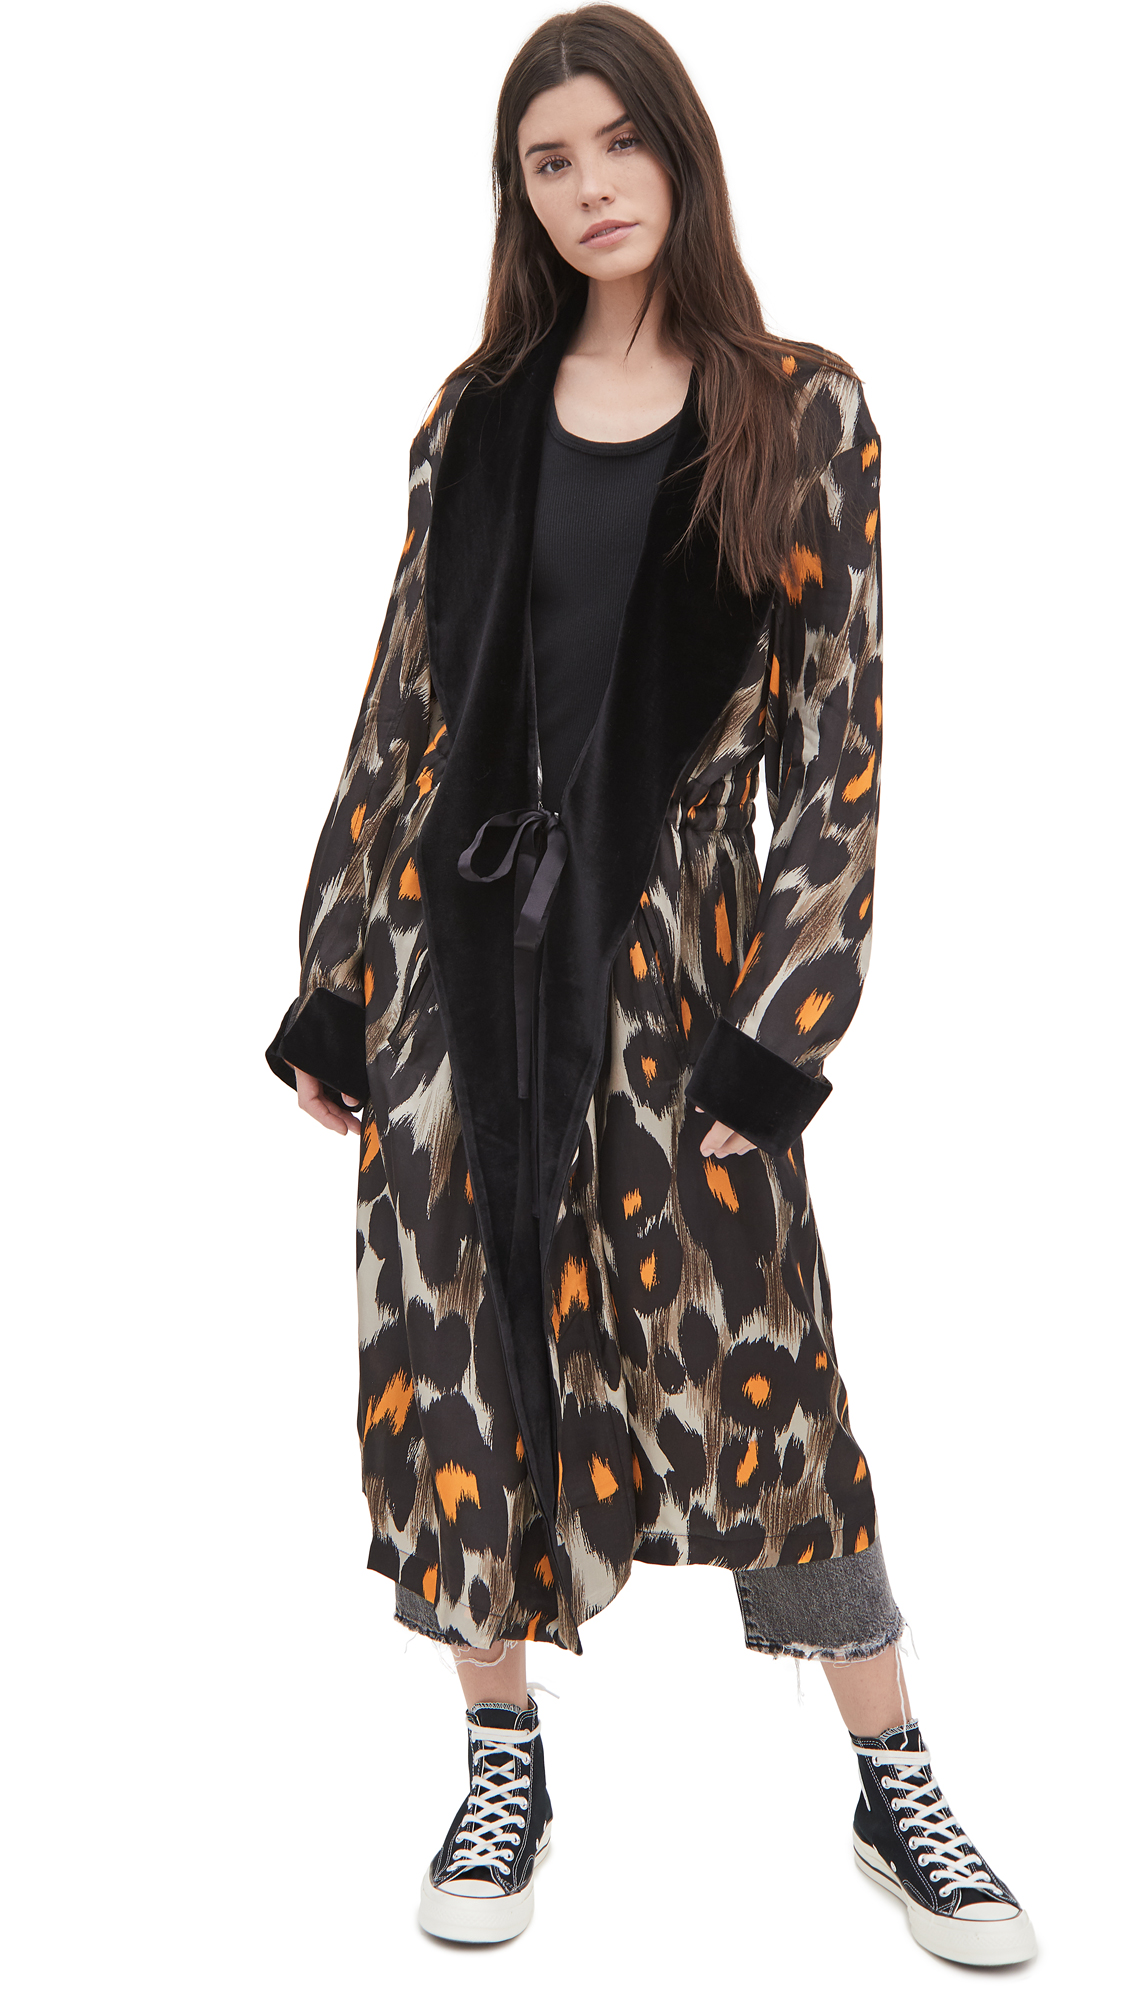 R13 Robe With Cinched Waist